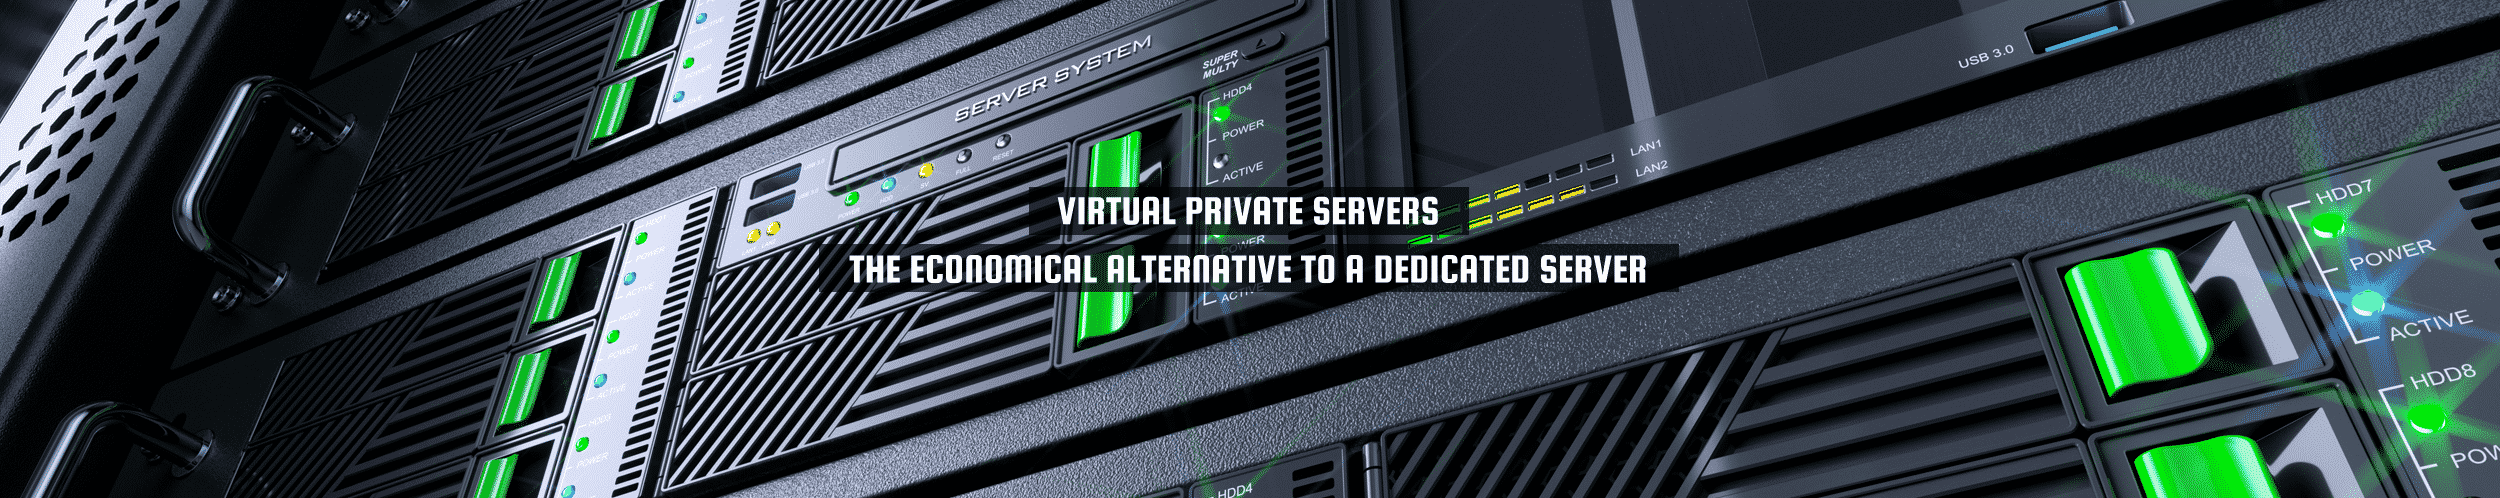 "52Degrees Virtual Hosting - funksie beeld | ""virtuele privaat bedieners - die ekonomiese alternatief vir 'n toegewyde bediener"" 